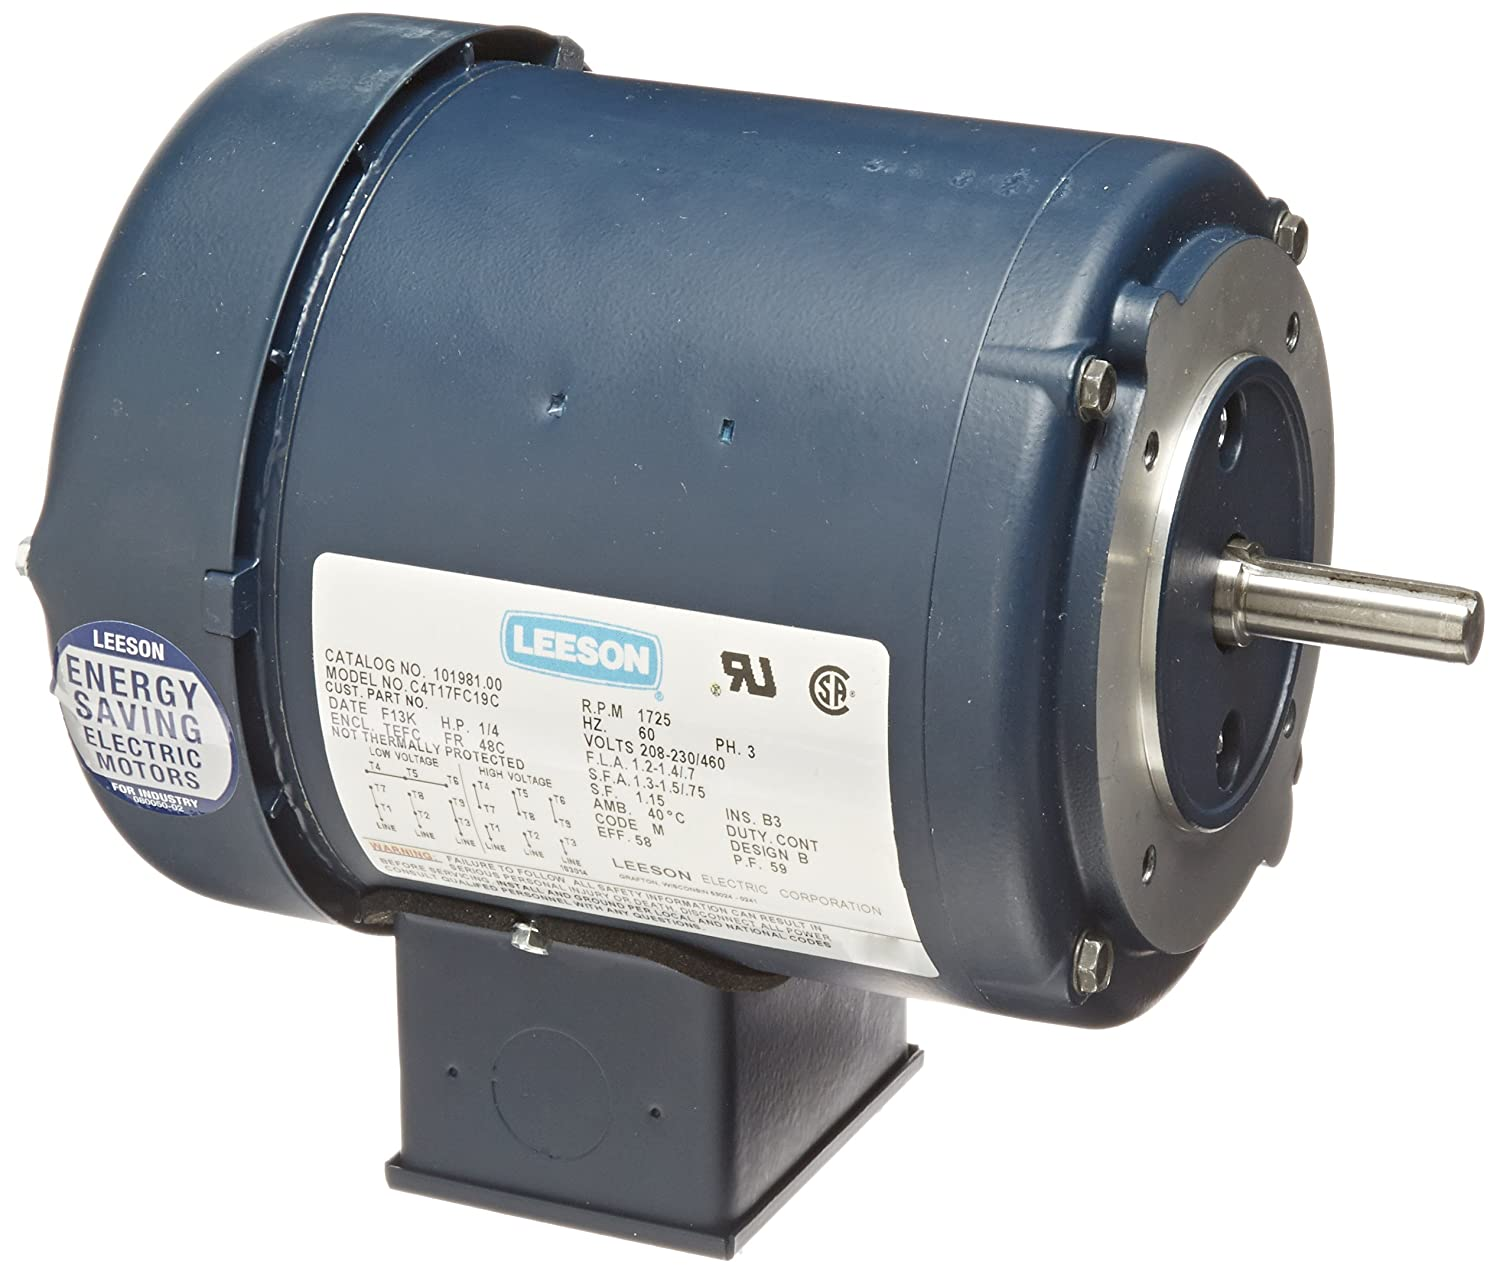 3 Phase 1//4HP 208-230//460V Voltage 1800 RPM 60Hz Fequency C4T17FC19C Rigid Mounting Leeson 101981.00 General Purpose C Face Motor 48C Frame